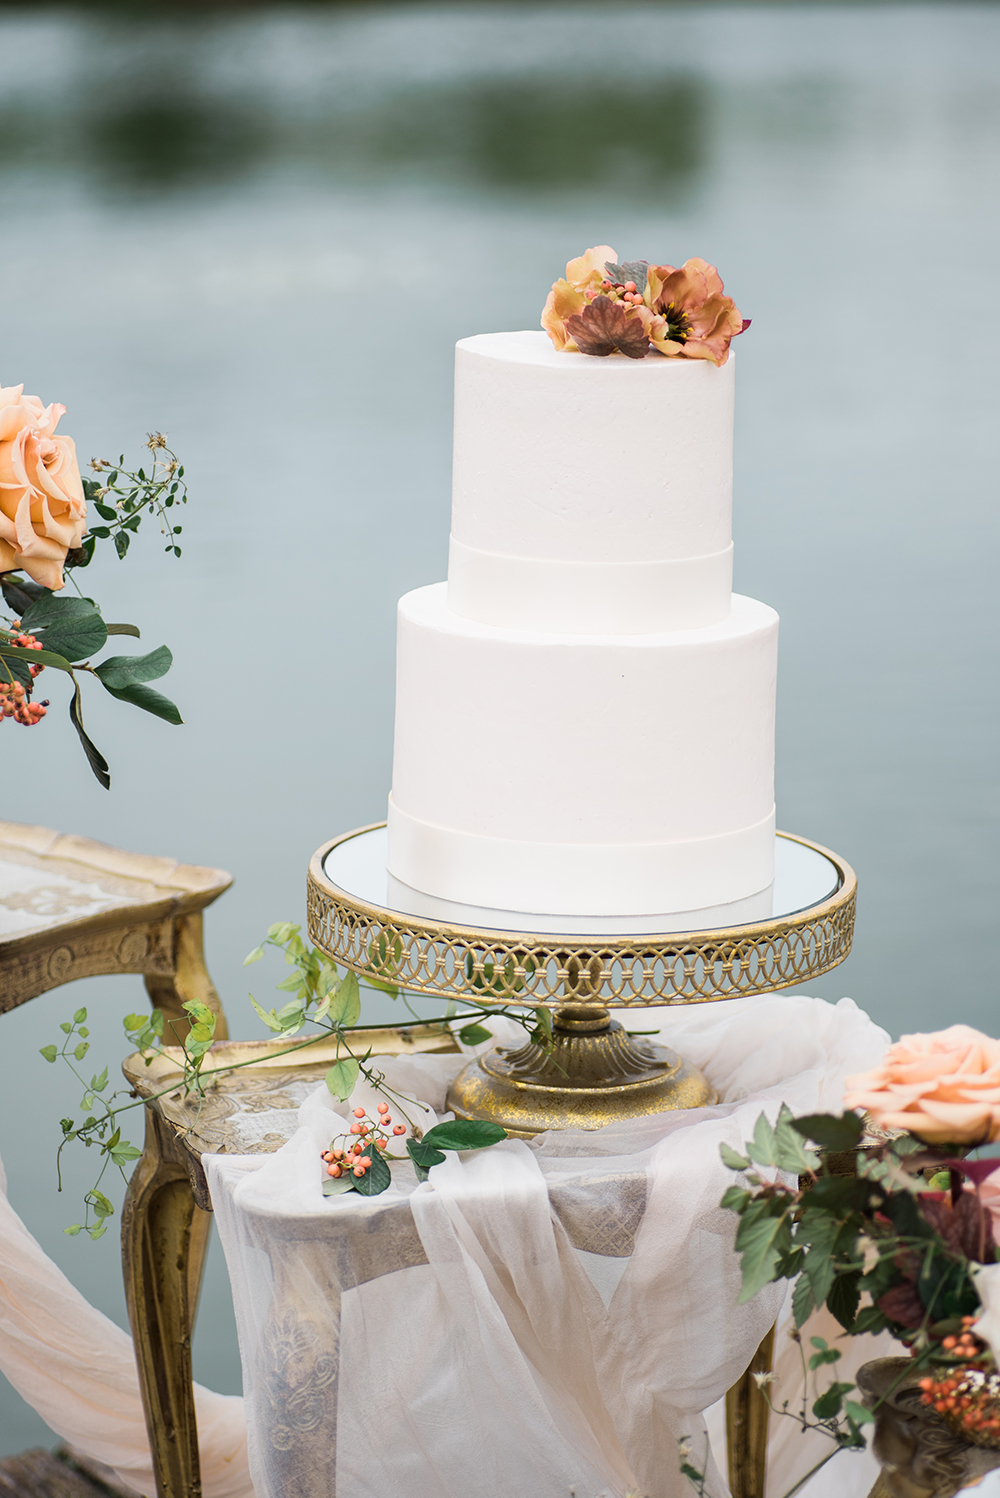 simple wedding cake - photo by Christa Breaugh Photography http://ruffledblog.com/early-fall-wedding-ideas